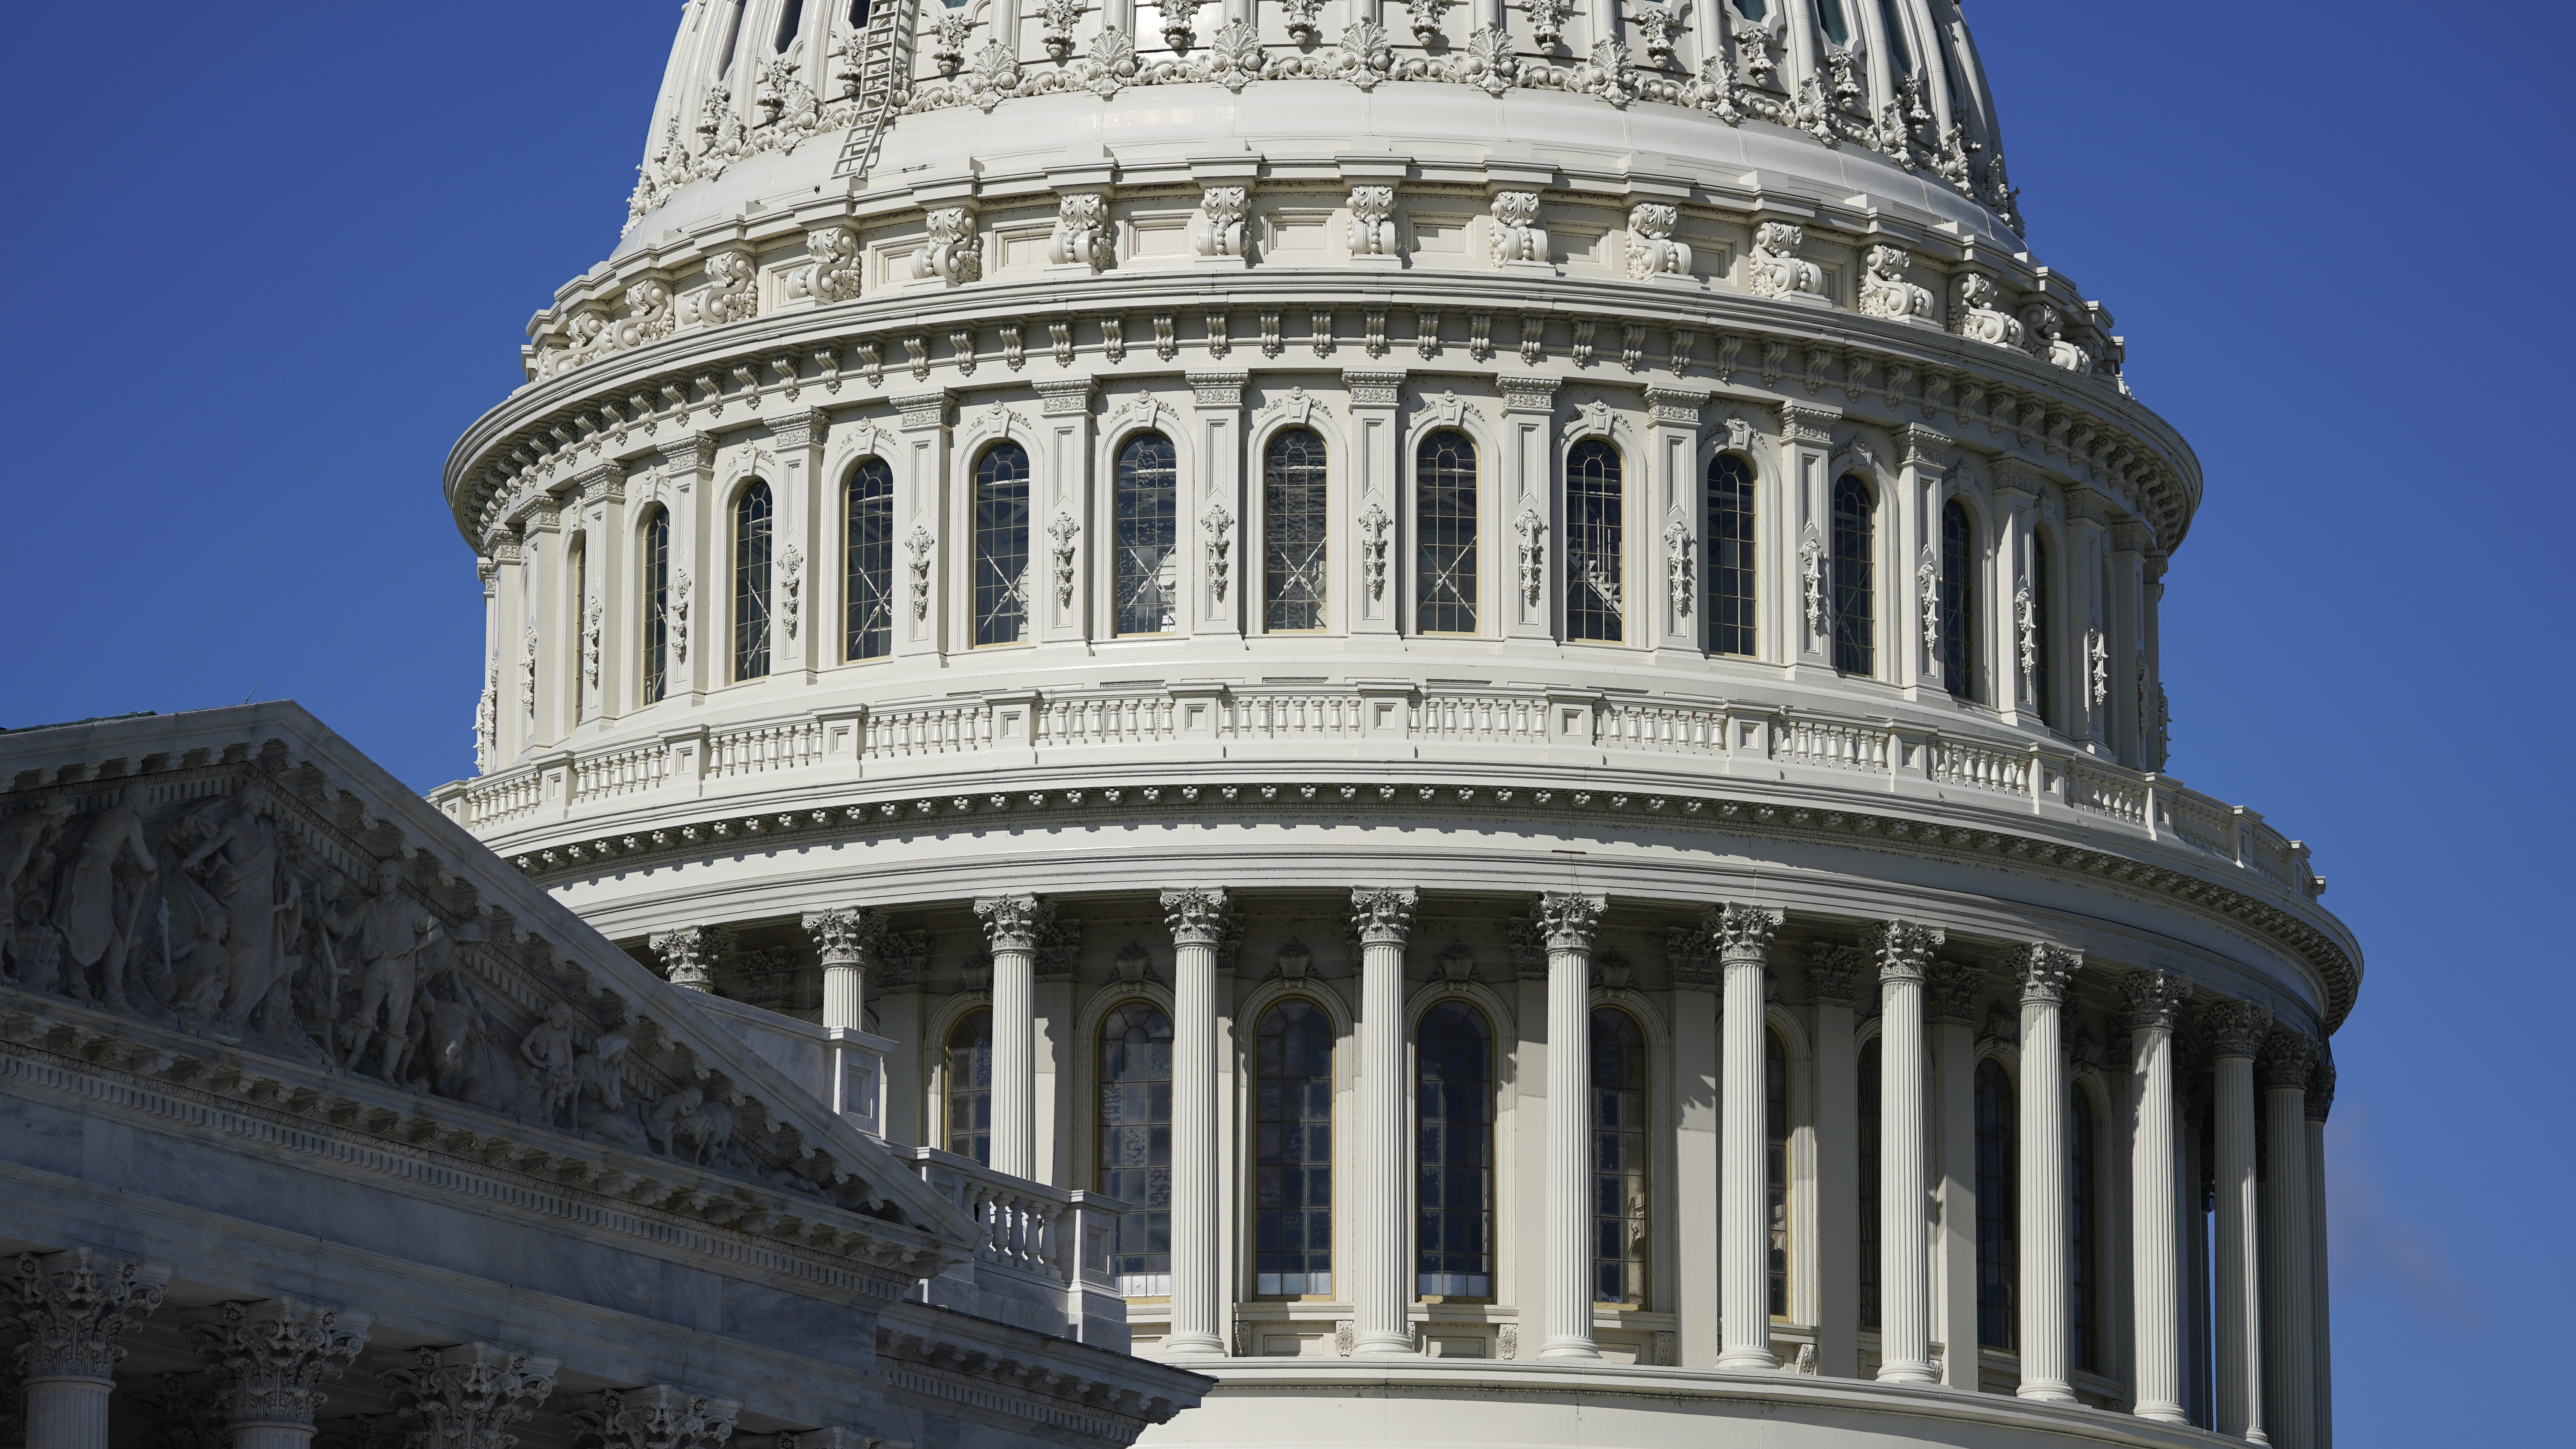 Democrats will have a narrow control of the U.S. Senate. The chamber will be split 50-50, with Vice President-elect Kamala Harris having a tiebreaking vote.